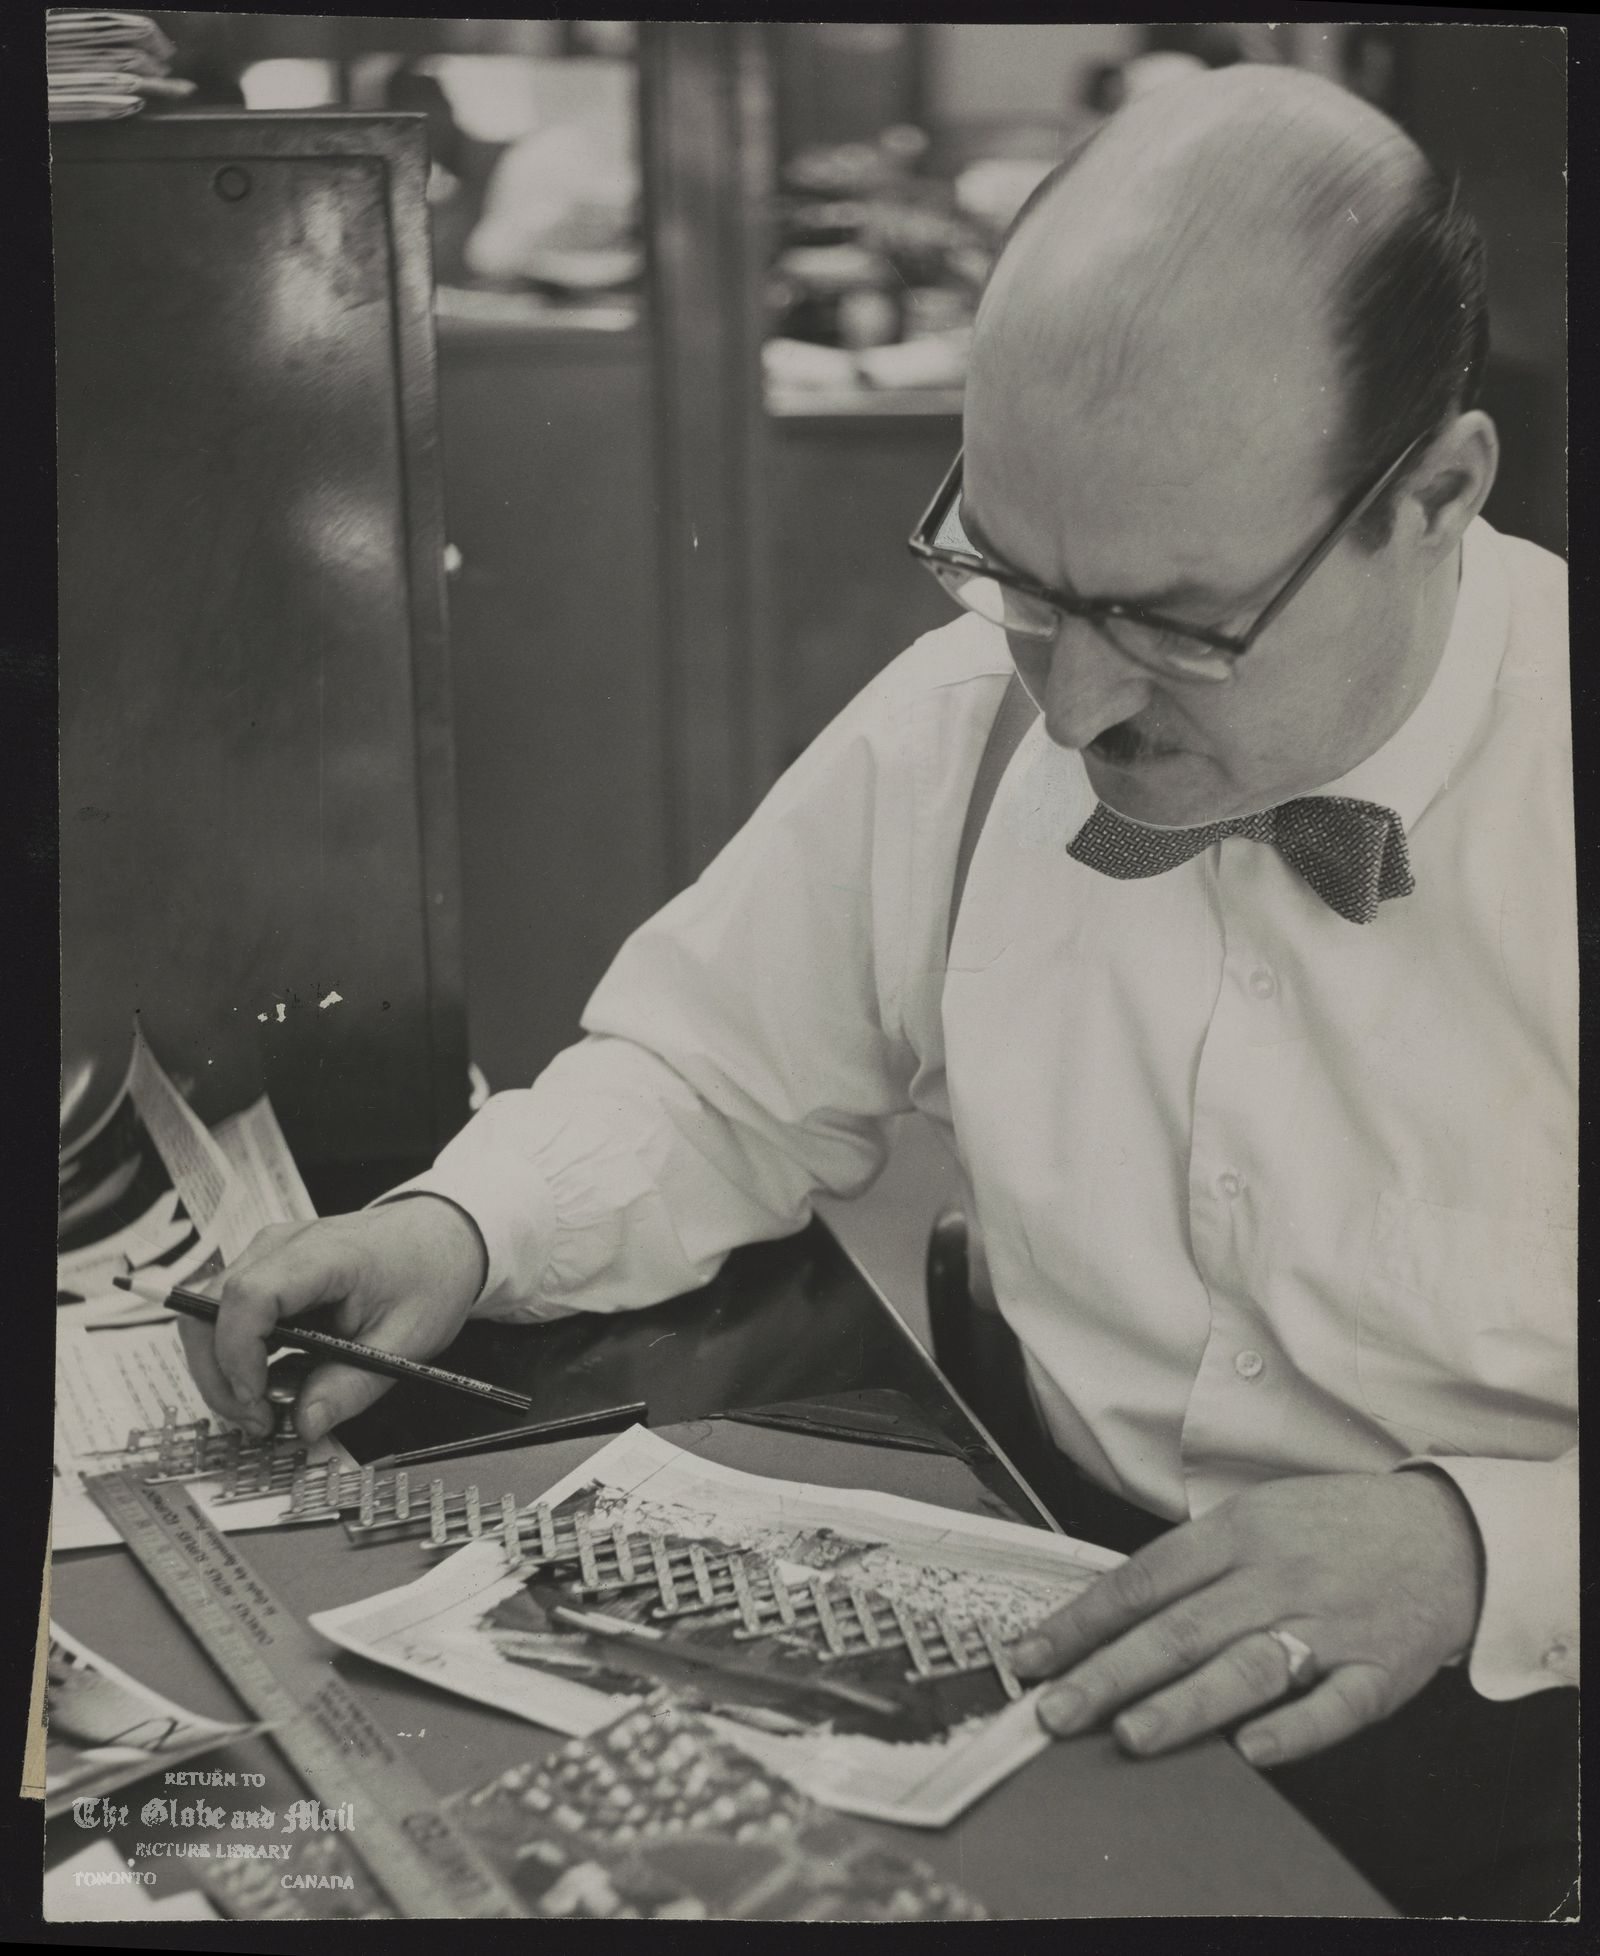 Norman D. BARRON Toronto. Newspaperman. Globe and Mail Assistant Photo Editor Norman Barron using a pantograph. Layout expert served 41 years with Globe. Norman Barron, a big, red- faced cigar-smoking extrovert who started his career as a copy boy at The Globe 41 years ago when he was 14, died of a heart attack early Saturday. As a result, his car struck a safety island and turned over on St. Clair Avenue East at Inglewood Drive. He was returning home from a party. The senior member of The Globe and Mail newsroom, Mr. Barron was responsible over the years for much of the makeup and design of the newspaper. He was considered by his colleagues at the three Toronto newspapers as the best in the business at solving layout problems. He joined The Globe in 1929 and in 1933 he became an apprentice printer and worked in the composing room of The Globe and later The Globe and Mail until he joined the army in 1940. He was stationed at Brantford and did not go overseas. In 1947 he transferred from the composing room to the editorial department as a make-up editor. It was an unusual move, the first such transfer at the paper. Ten years later he did the typographical design for the new Globe Magazine and Saturday weekly section of the newspaper. He was a gruff character who bellowed in complaint when a layout wasn't as he wanted it.